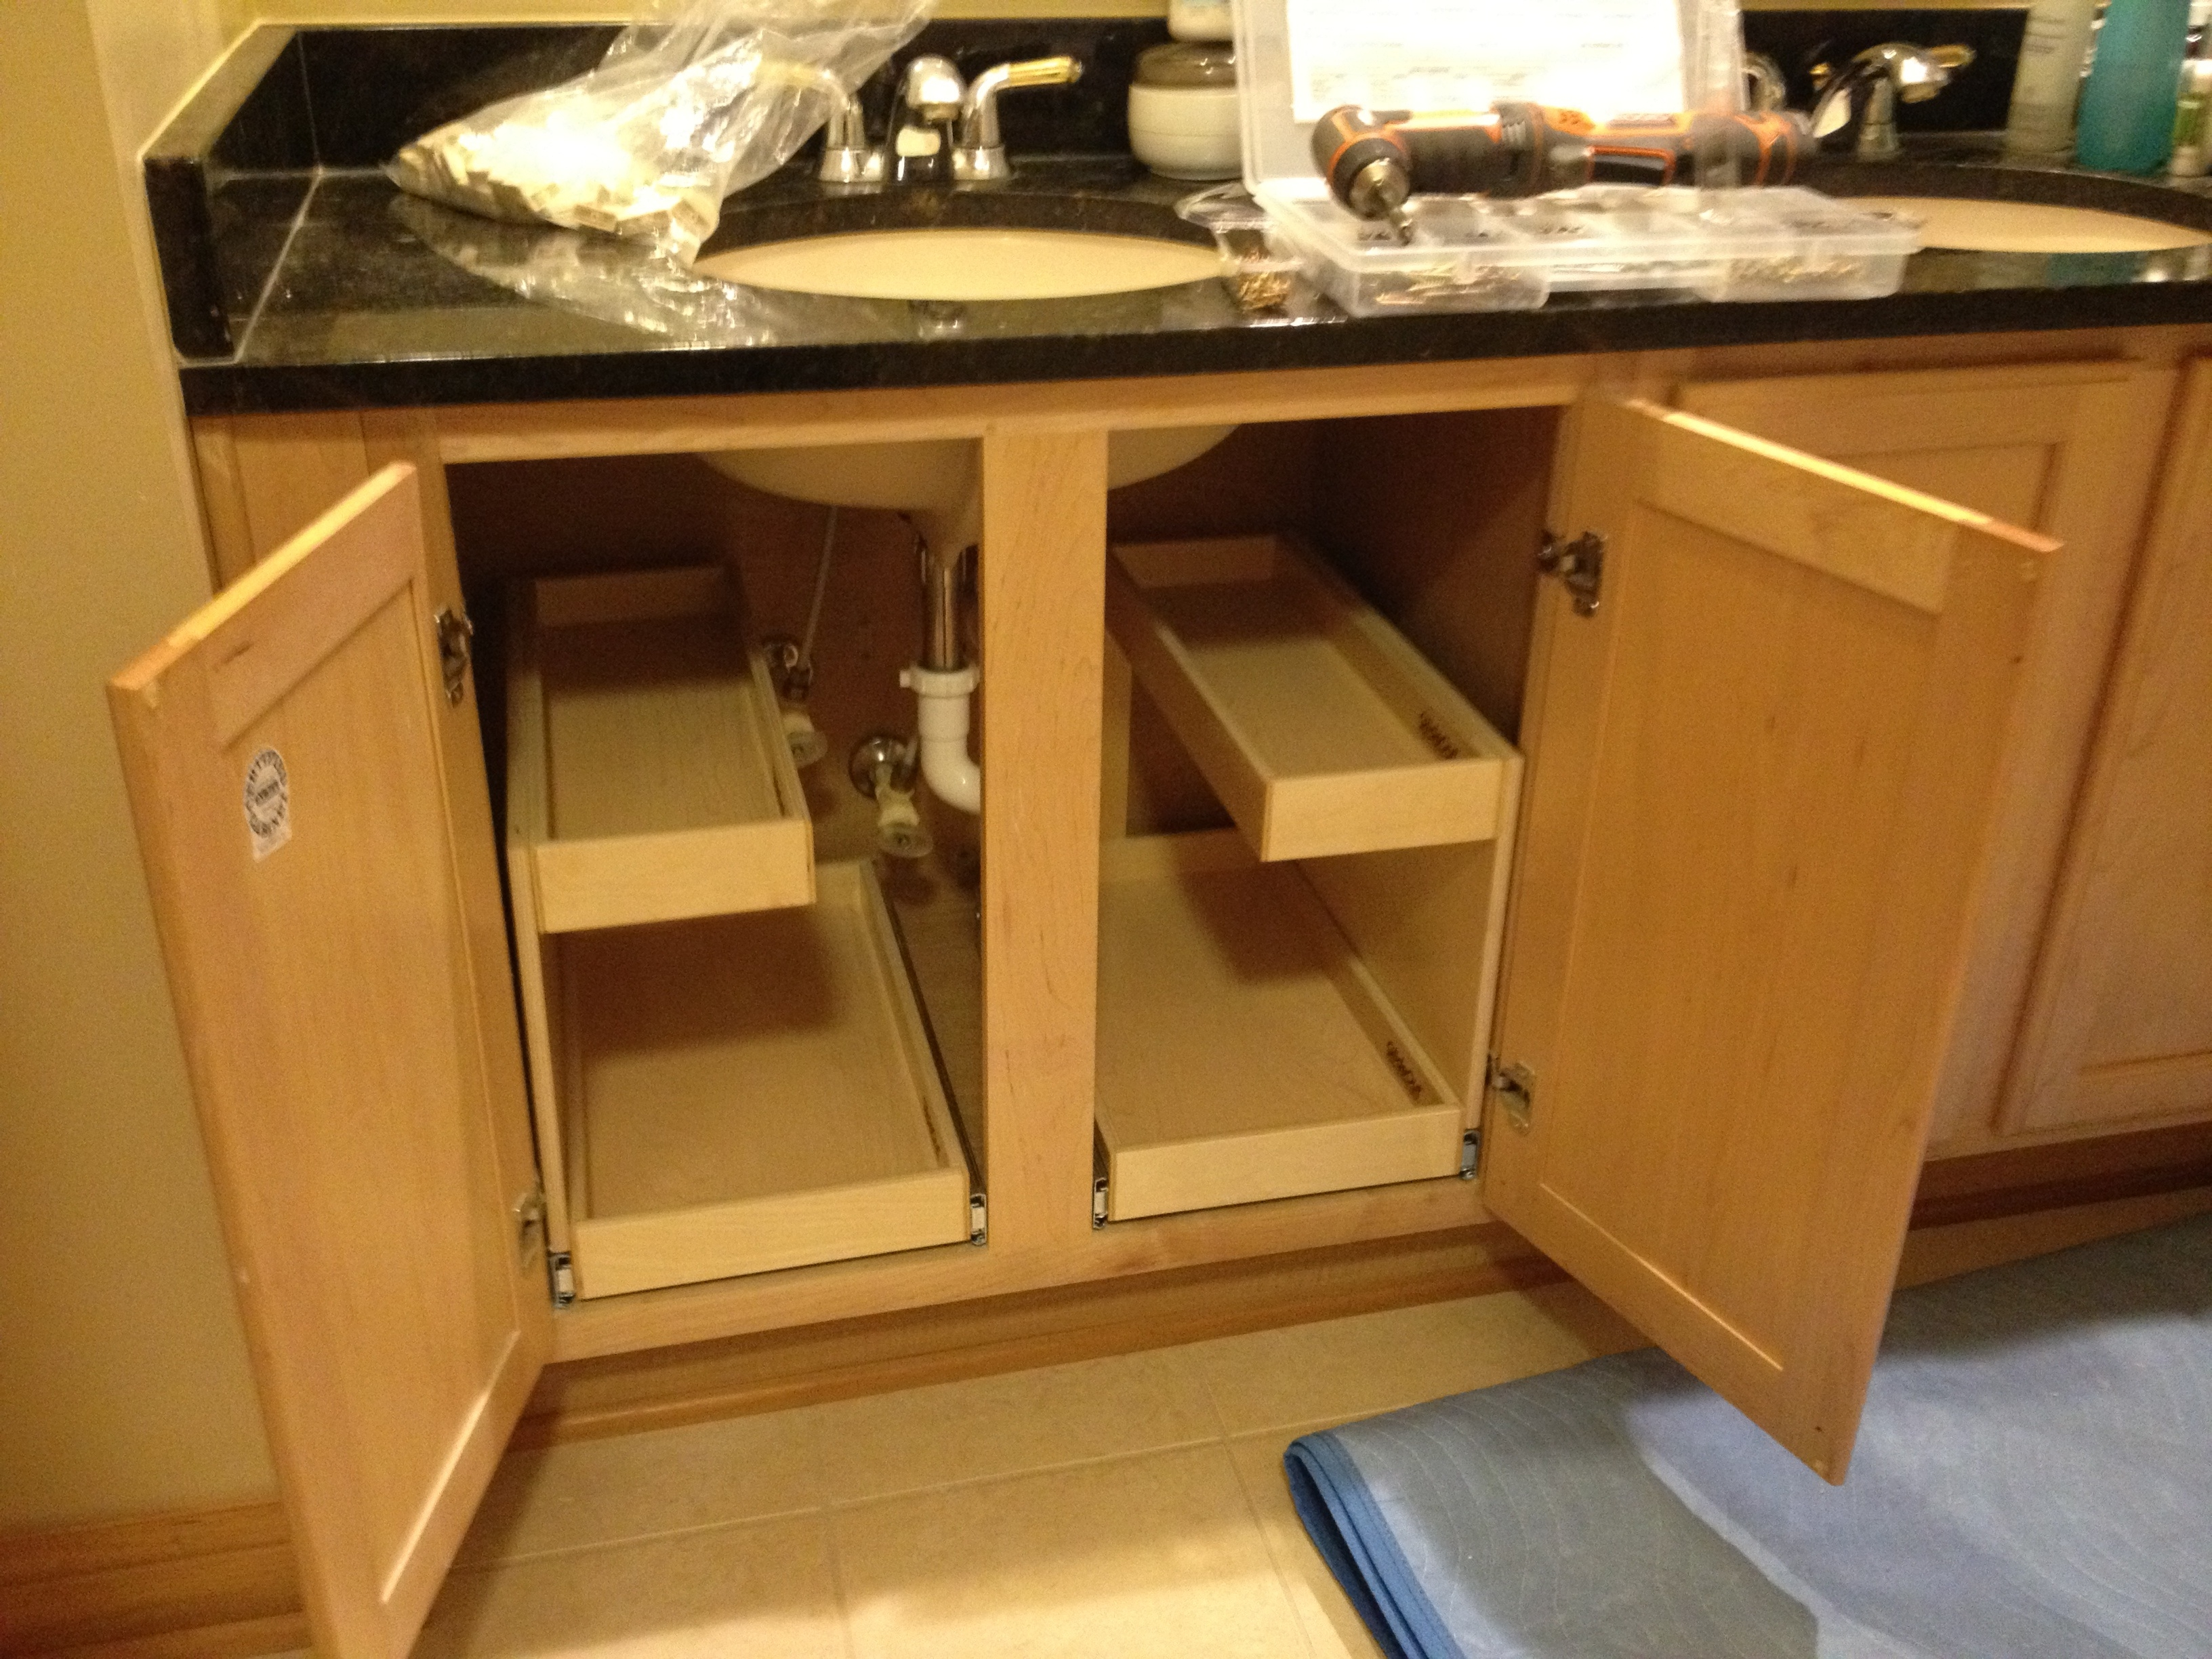 Kitchen & Bathroom Cabinet Pull-Out Drawer Organizers